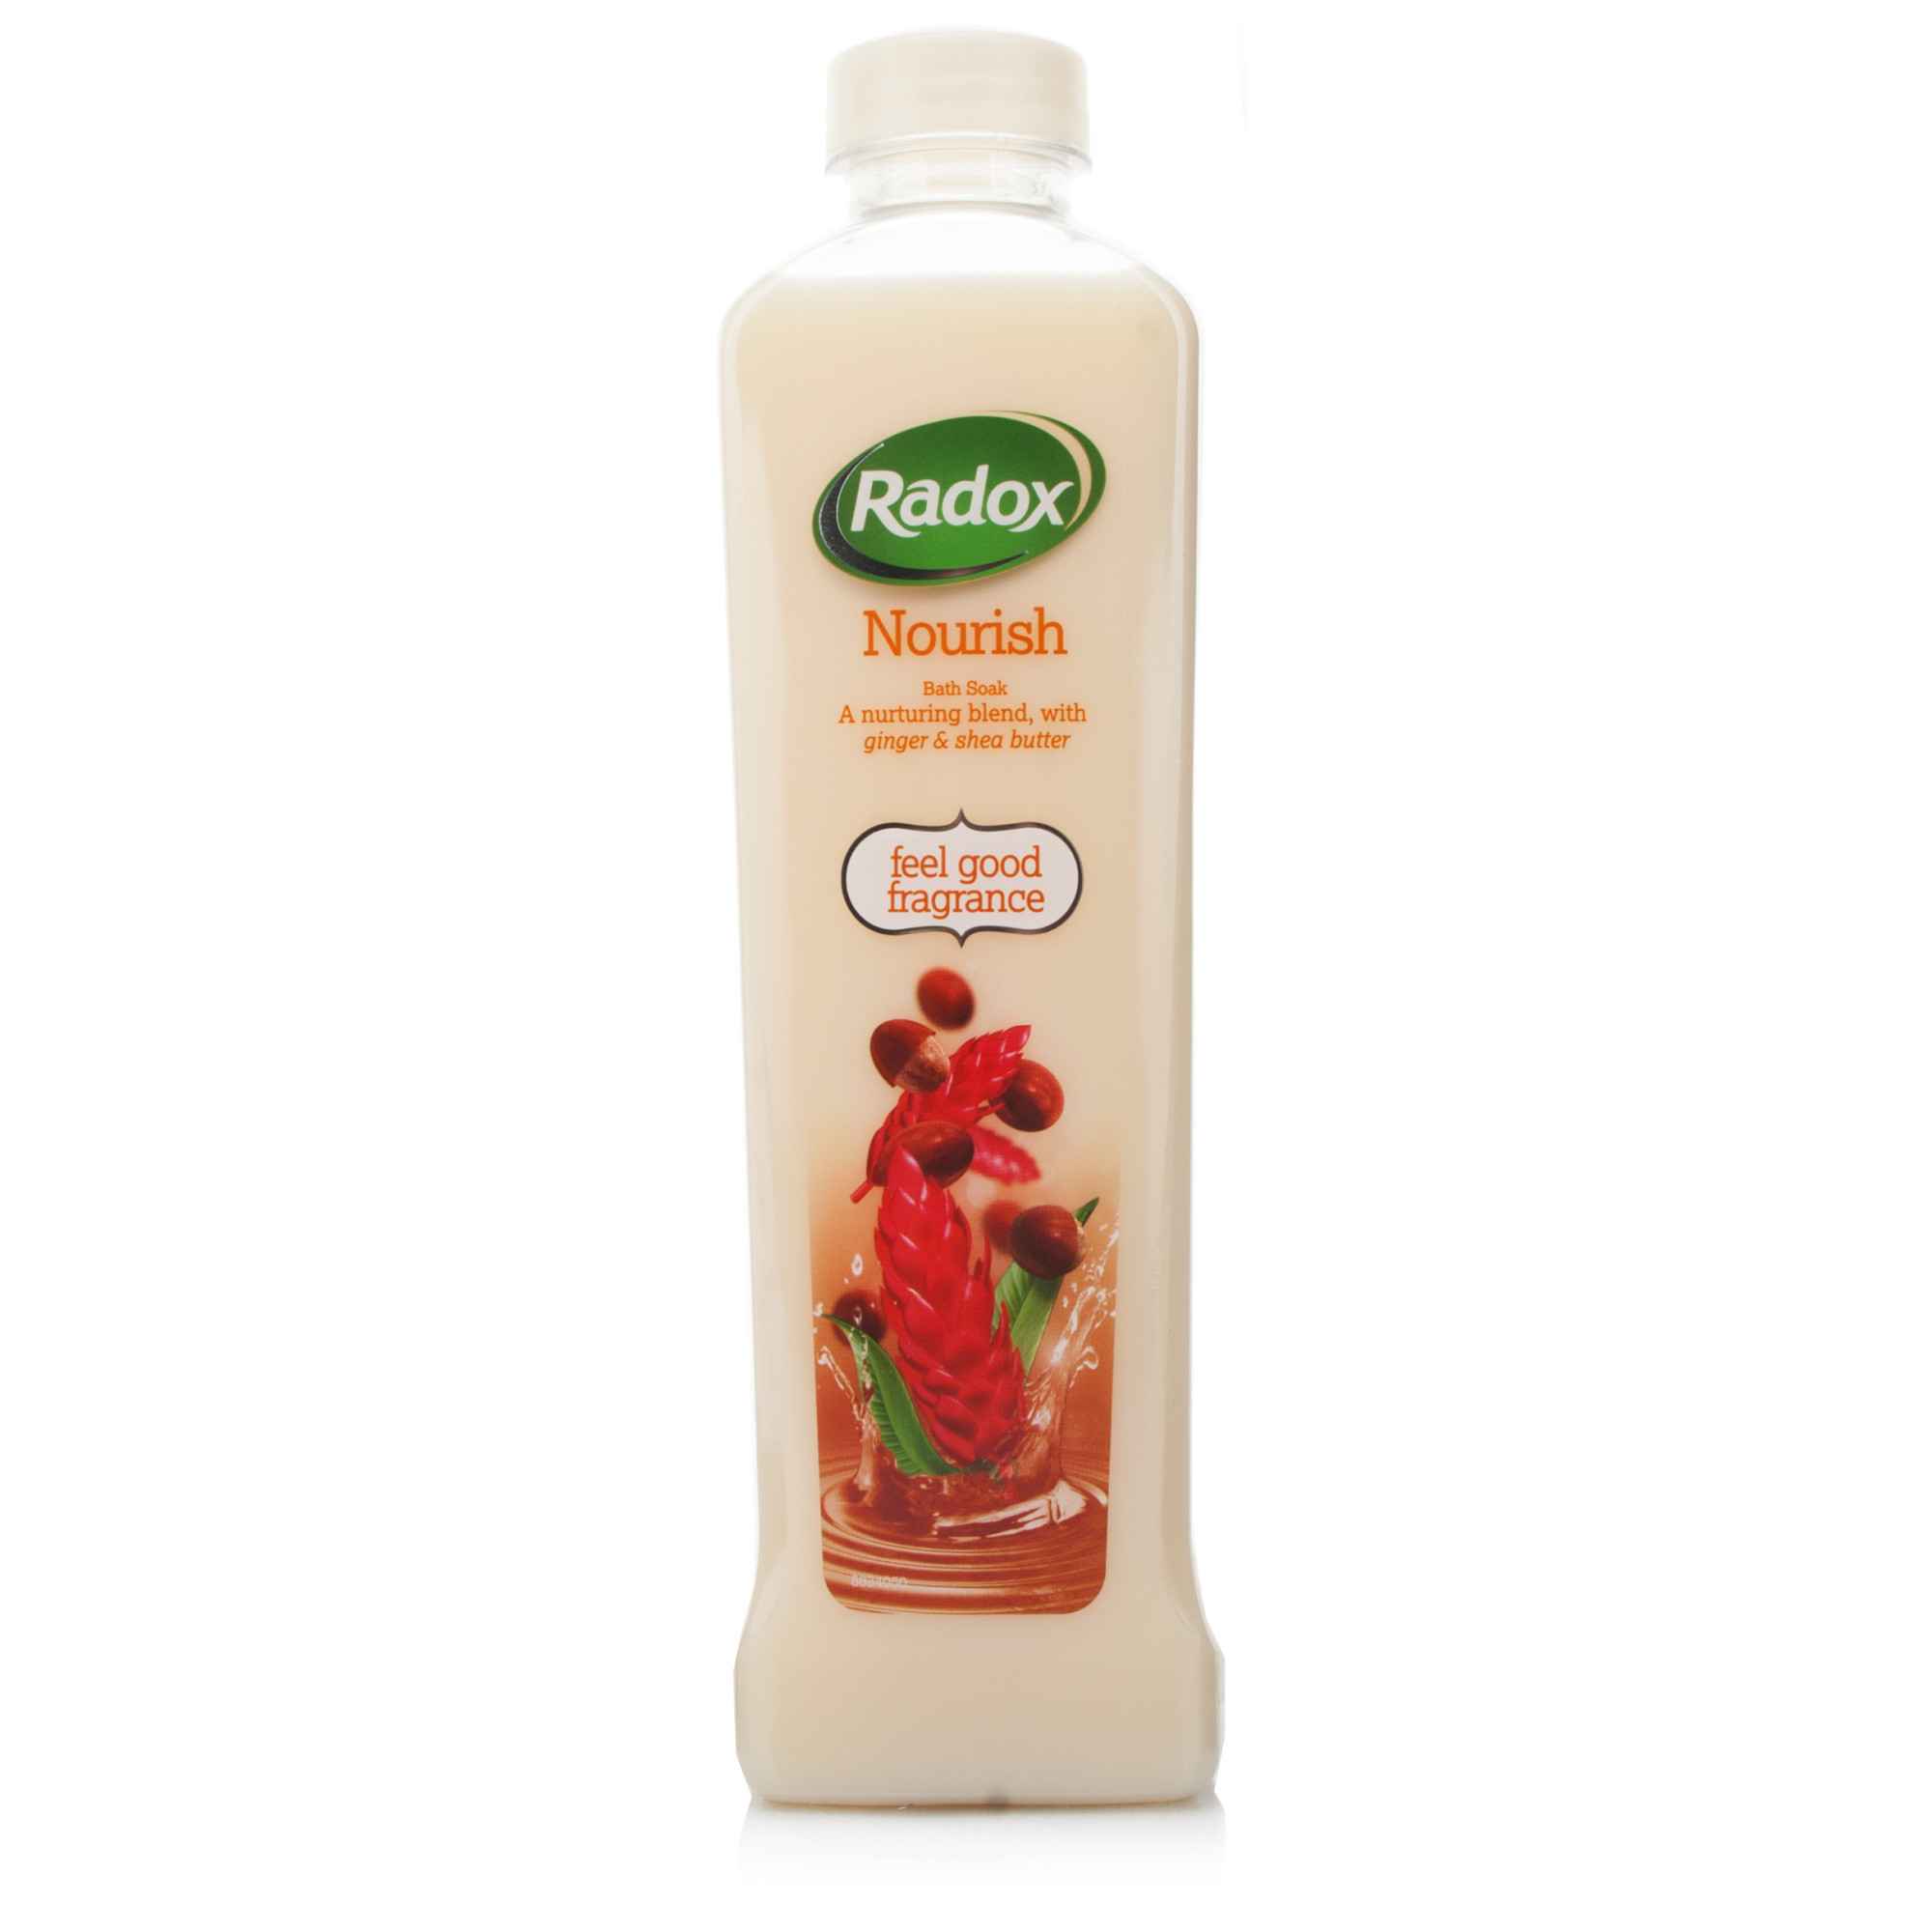 Radox Nourish Bath Soak